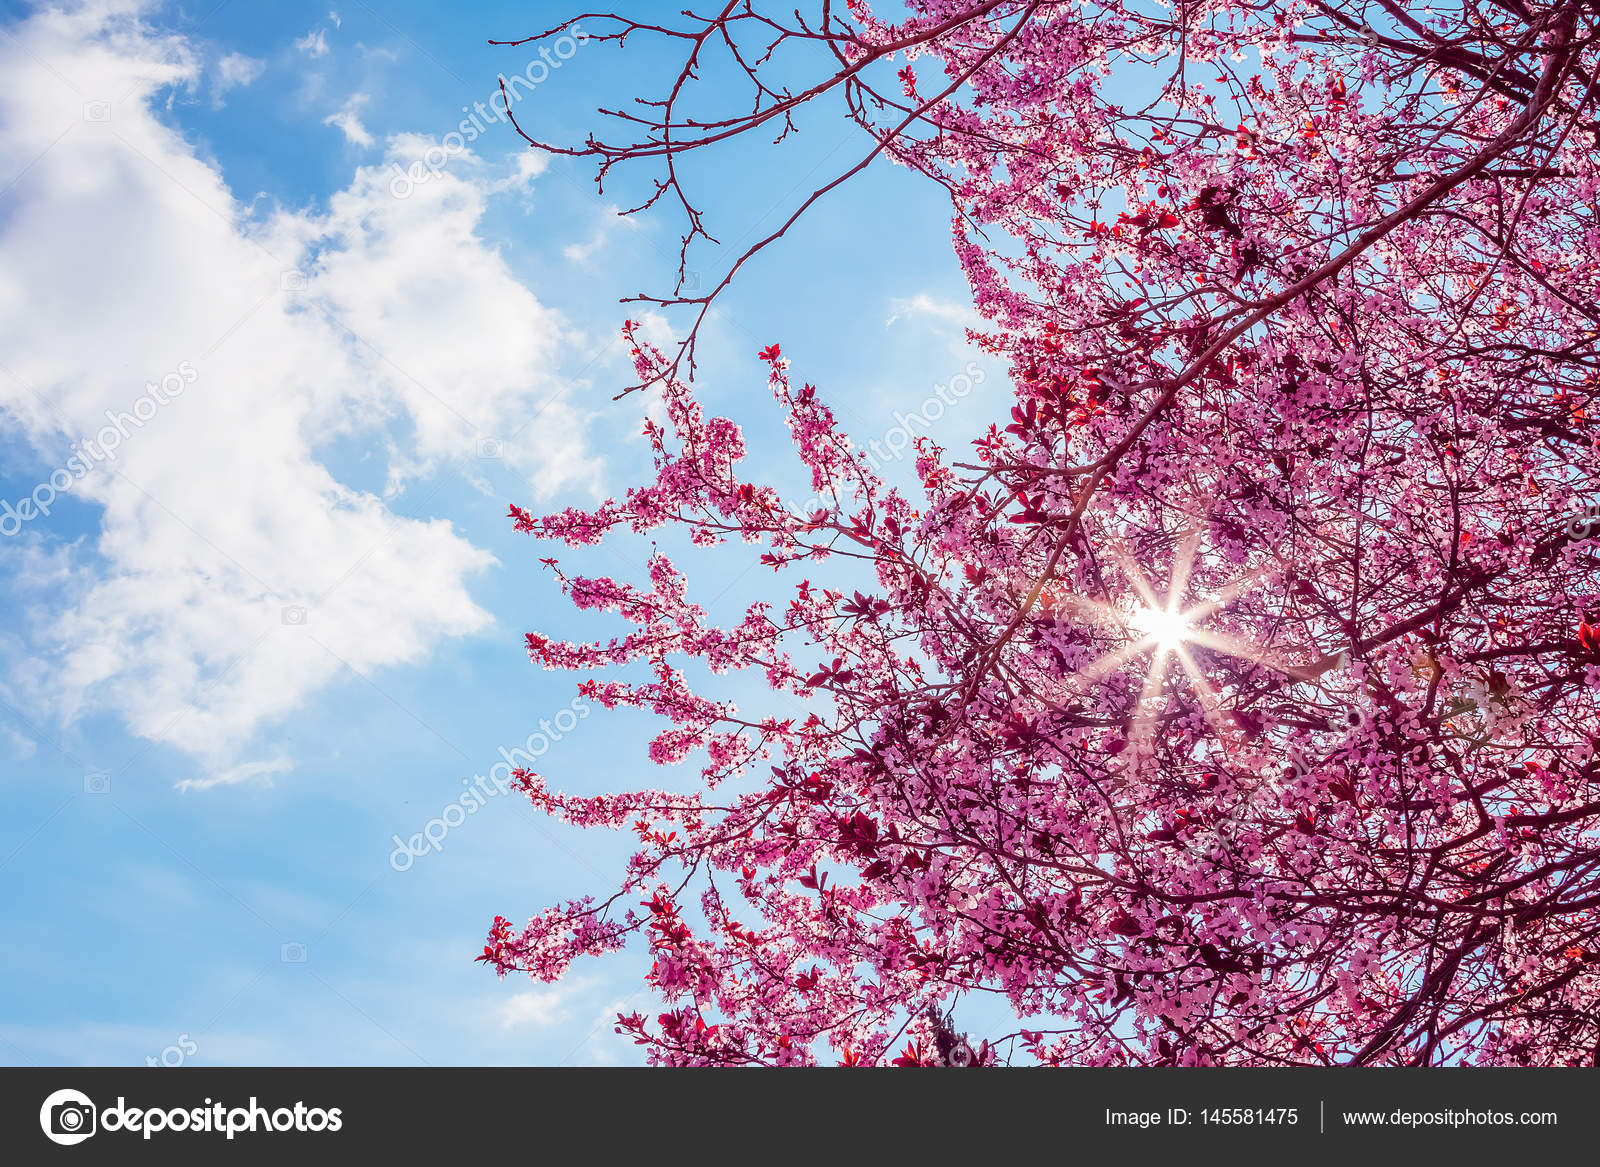 Spring tree with pink flowers almond blossom on a branch on green spring tree with pink flowers almond blossom on a branch on green background on blue sky with daily light with clouds photo by donfiore1 mightylinksfo